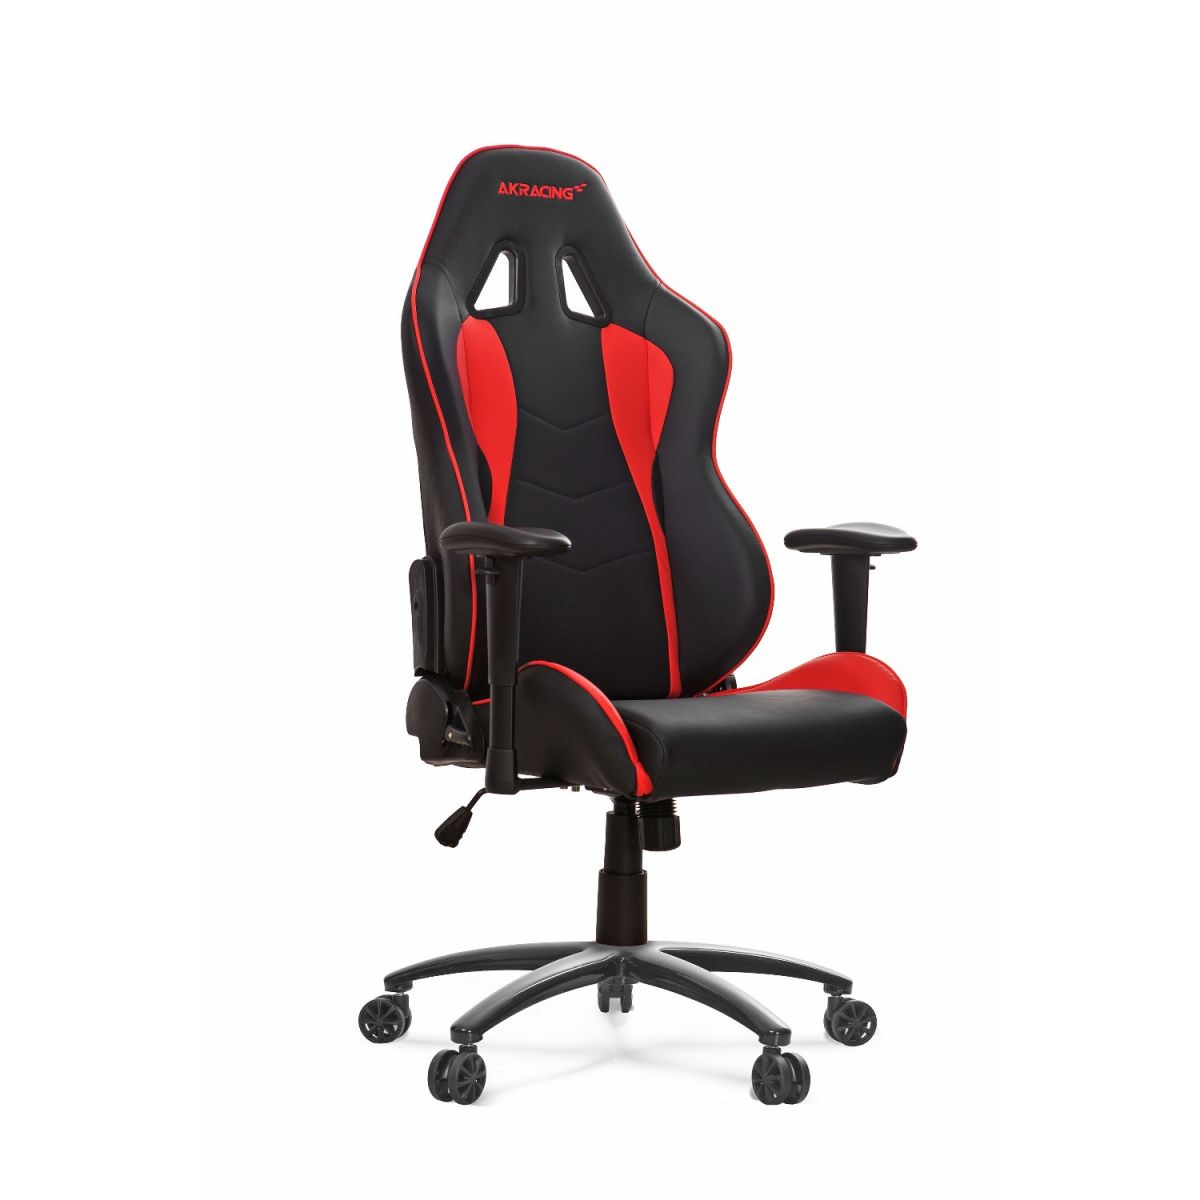 Cadeira AKRacing Nitro Gaming Red AK-NITRO-RD - AKRacing